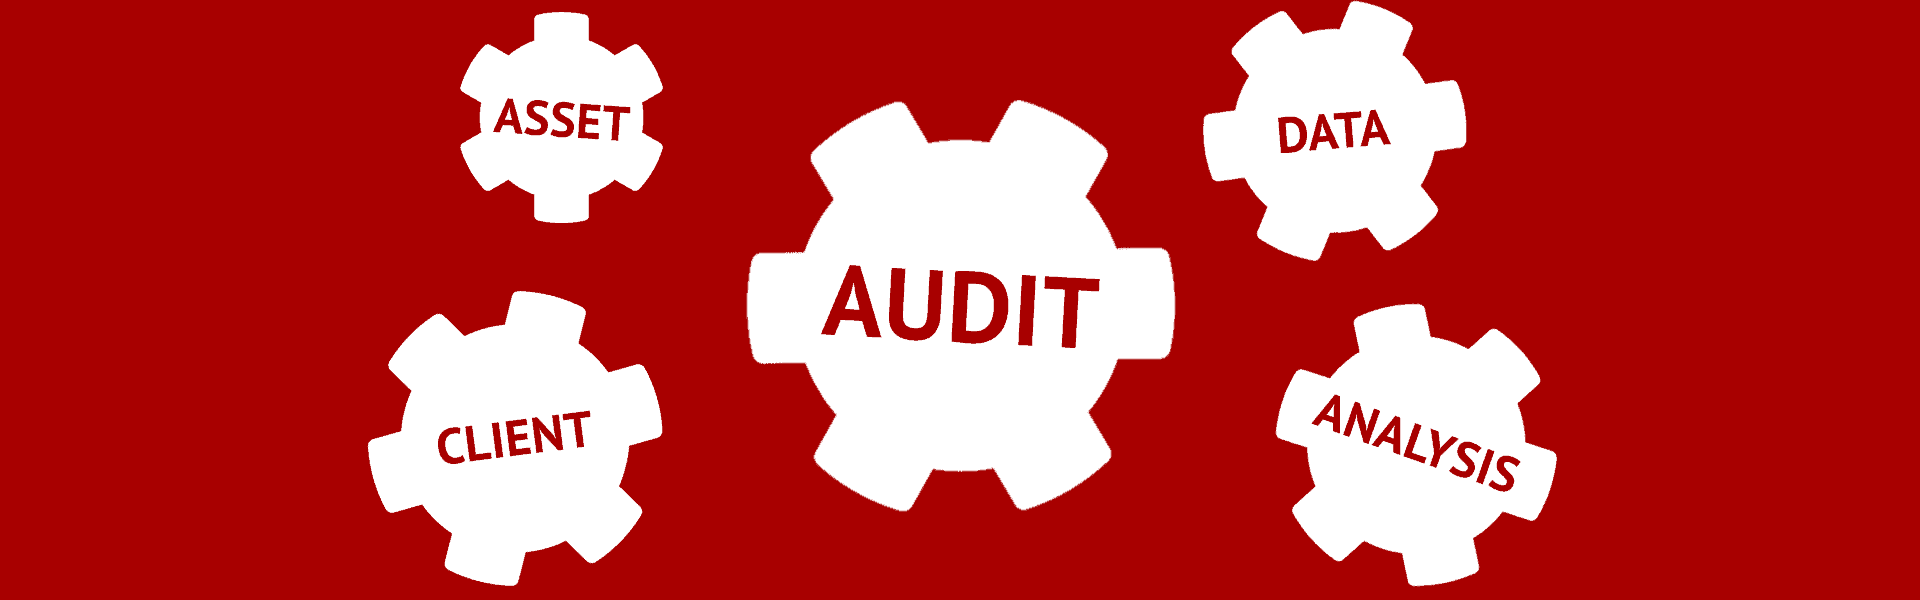 seo audit checklist template - showing audit analysis data asset client in cogs